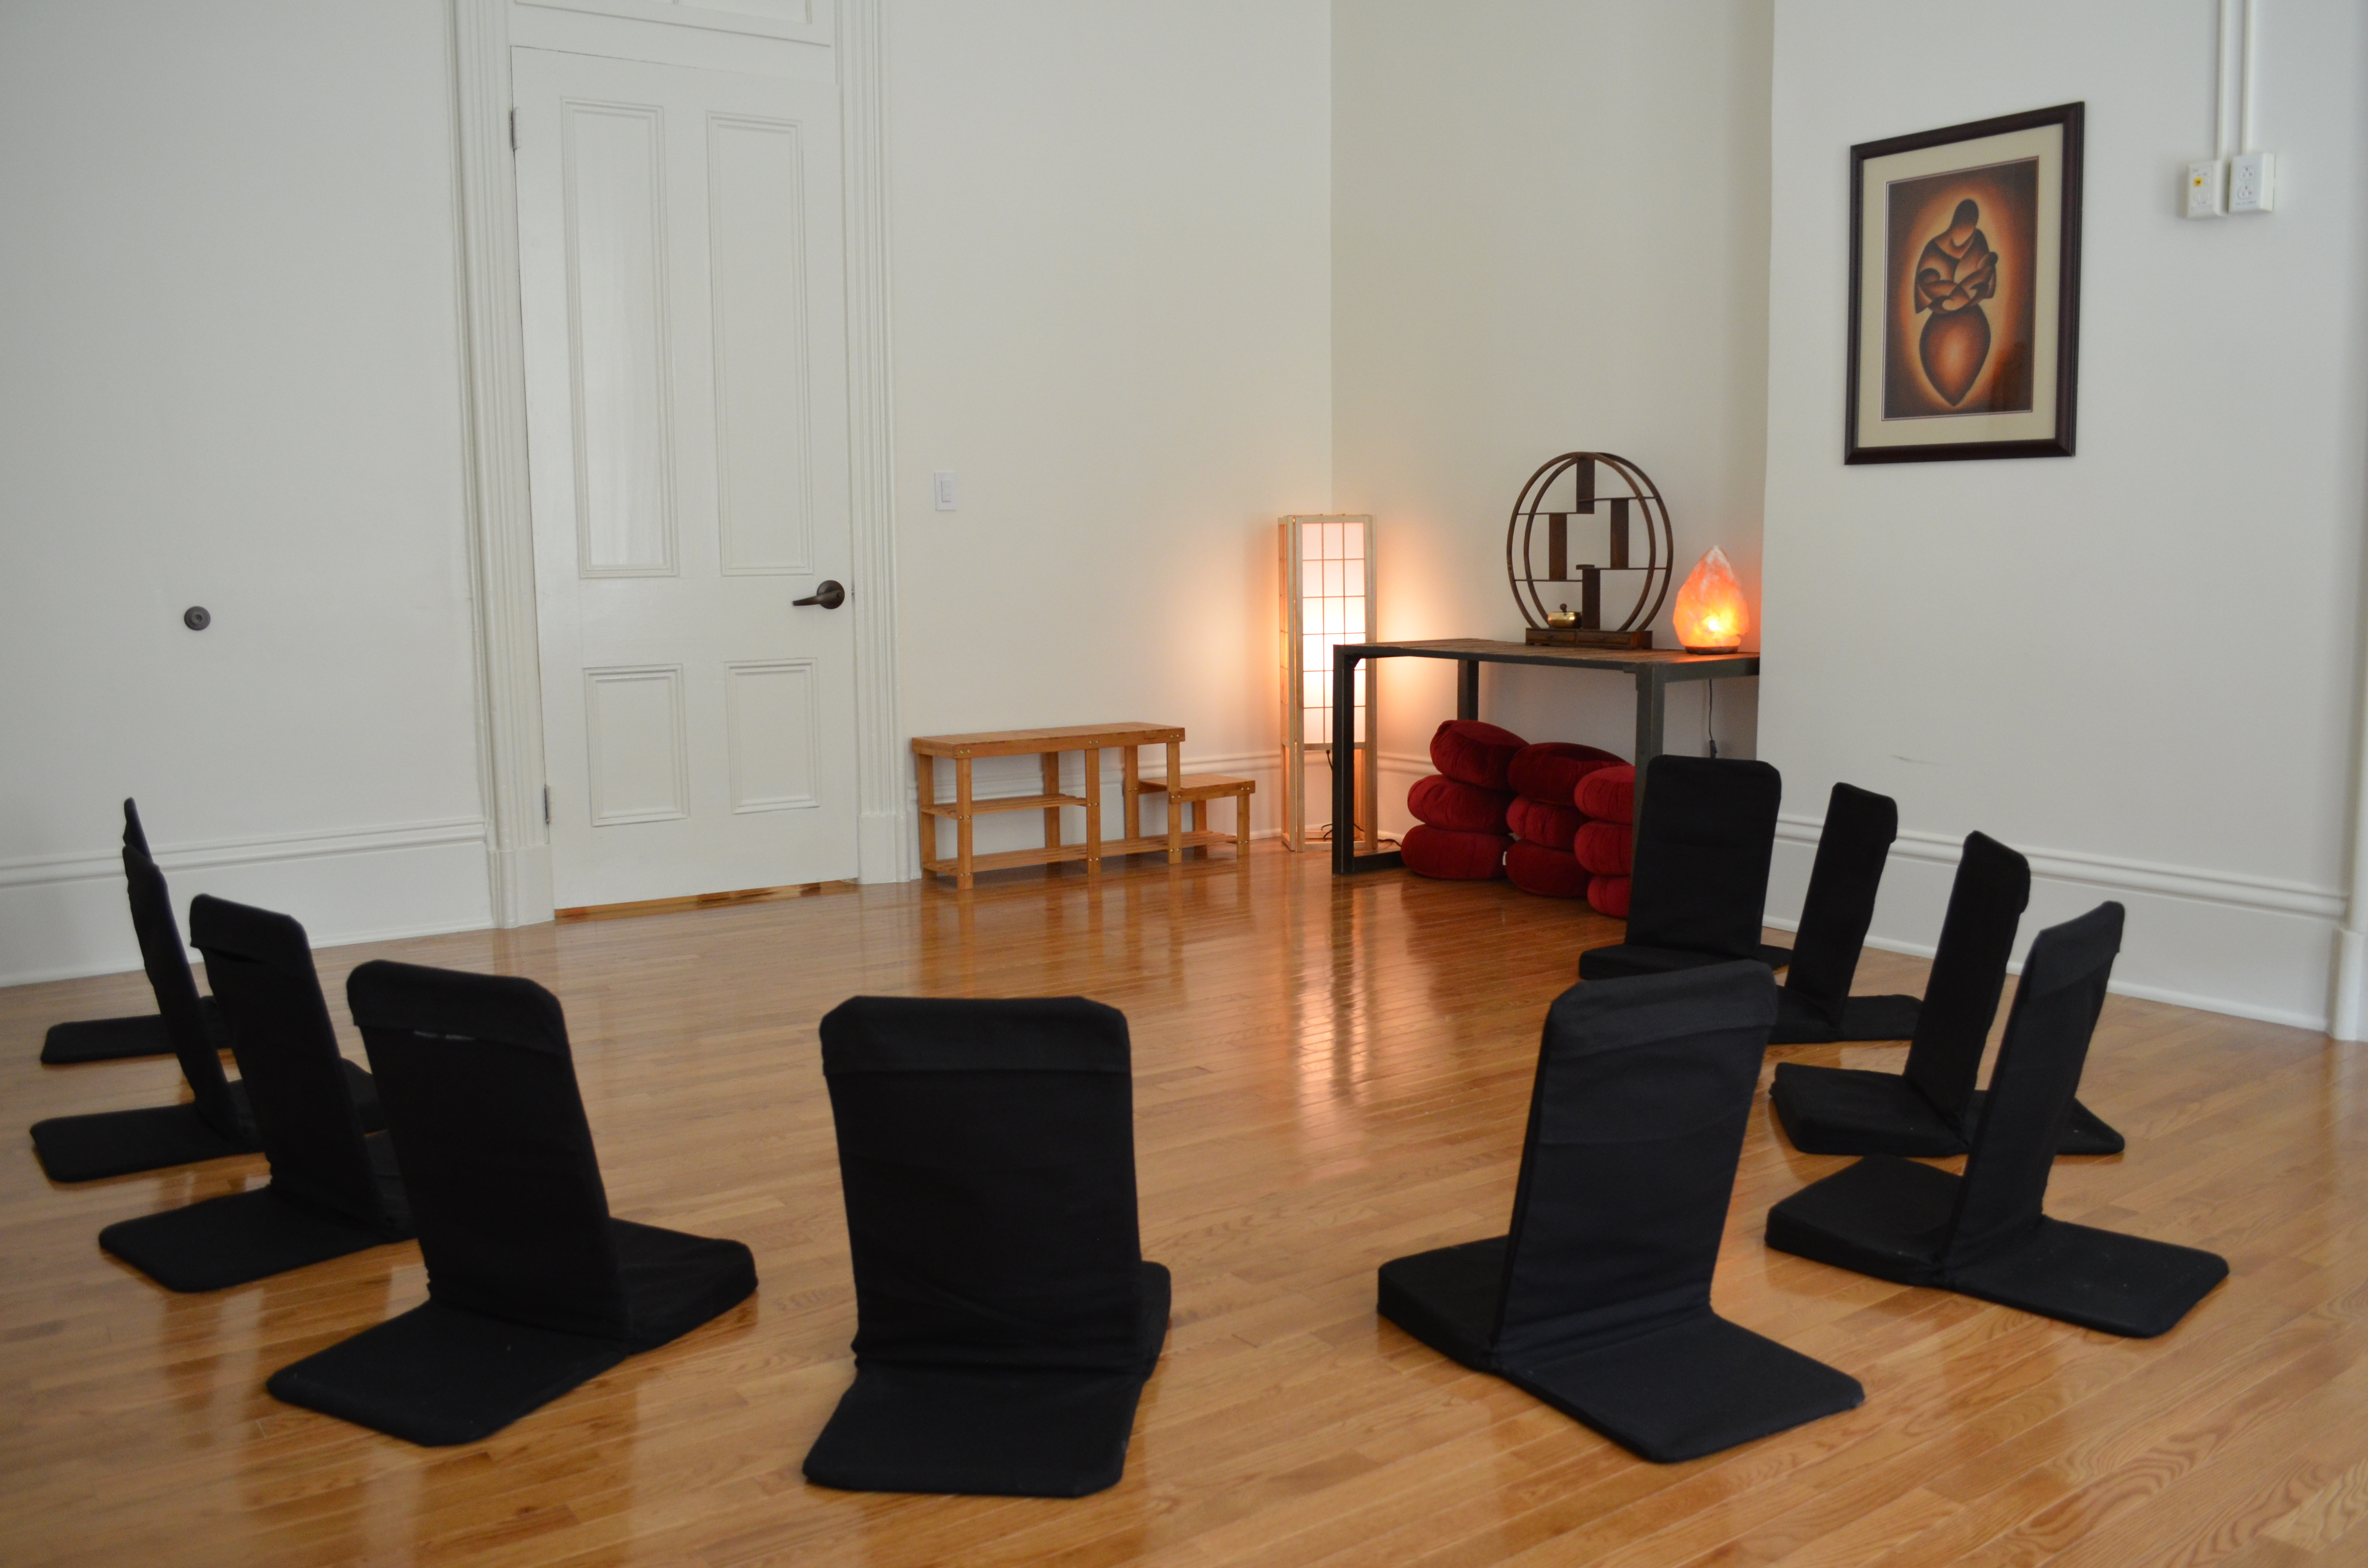 The Center for Student Wellbeing offers opportunities for yoga and meditation.